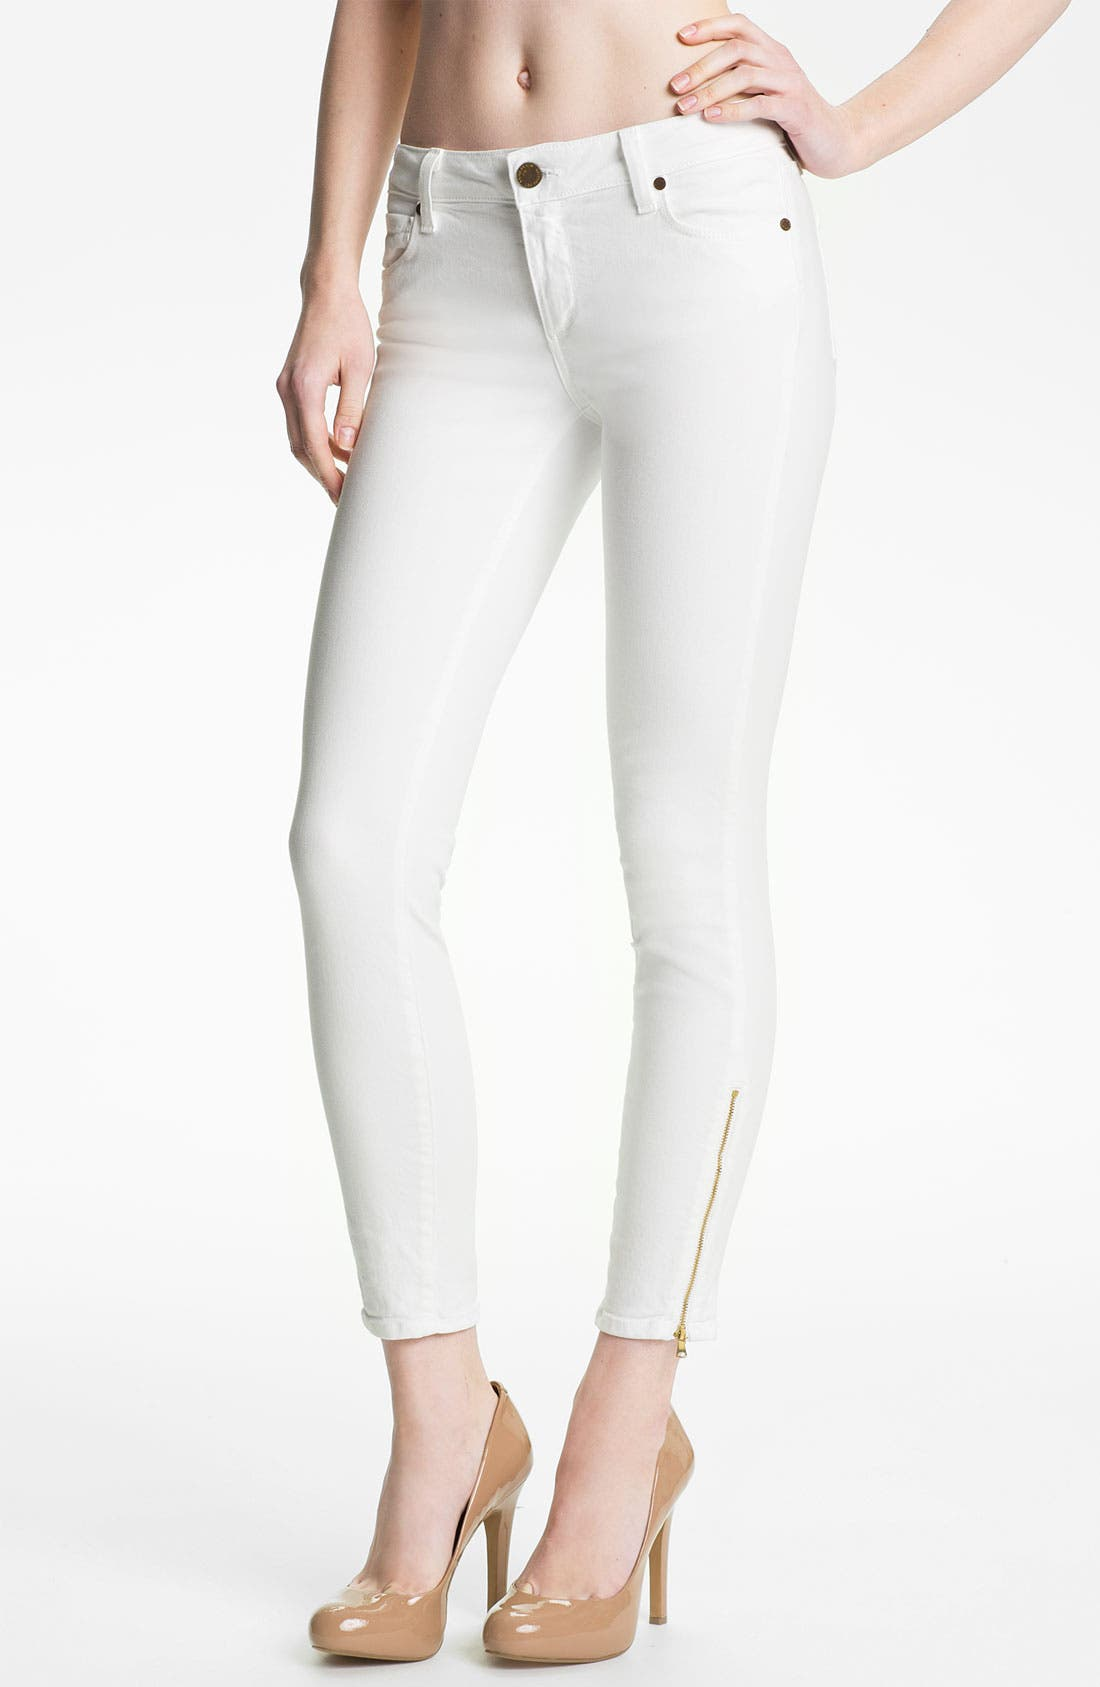 Alternate Image 1 Selected - Paige Denim 'Verdugo' Ankle Zip Skinny Stretch Jeans (White)